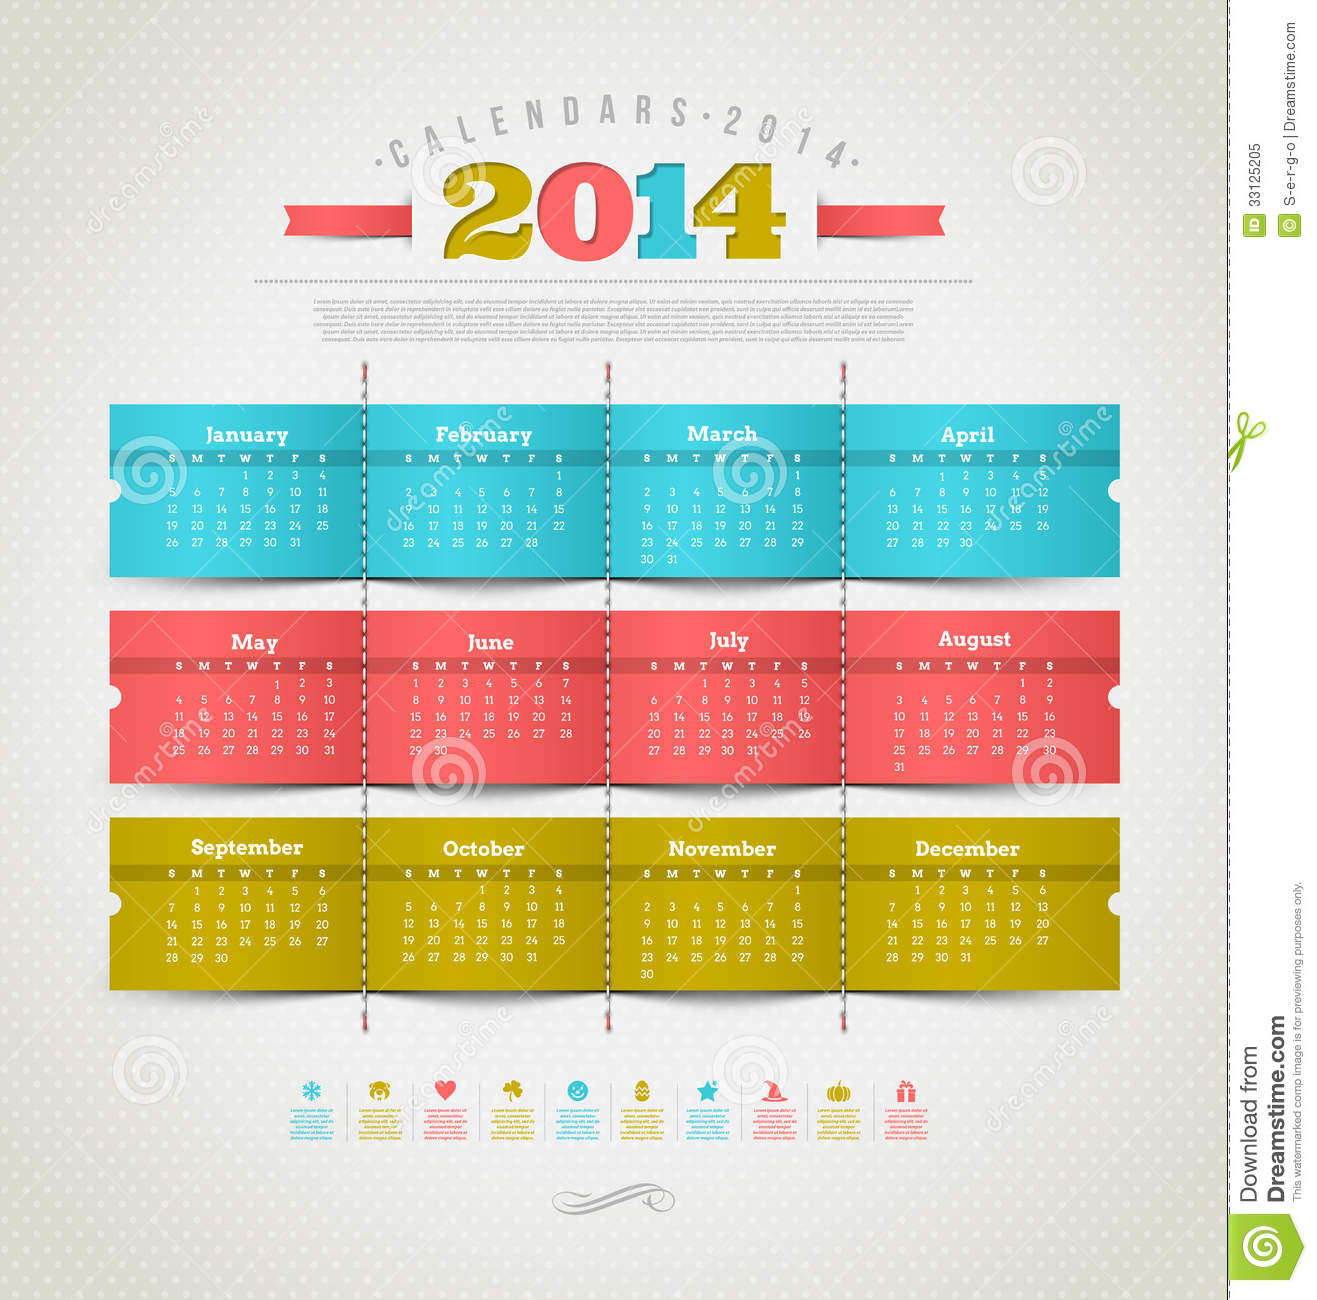 Calendar Typography Zenfolio : Calendar of with holidays icons royalty free stock